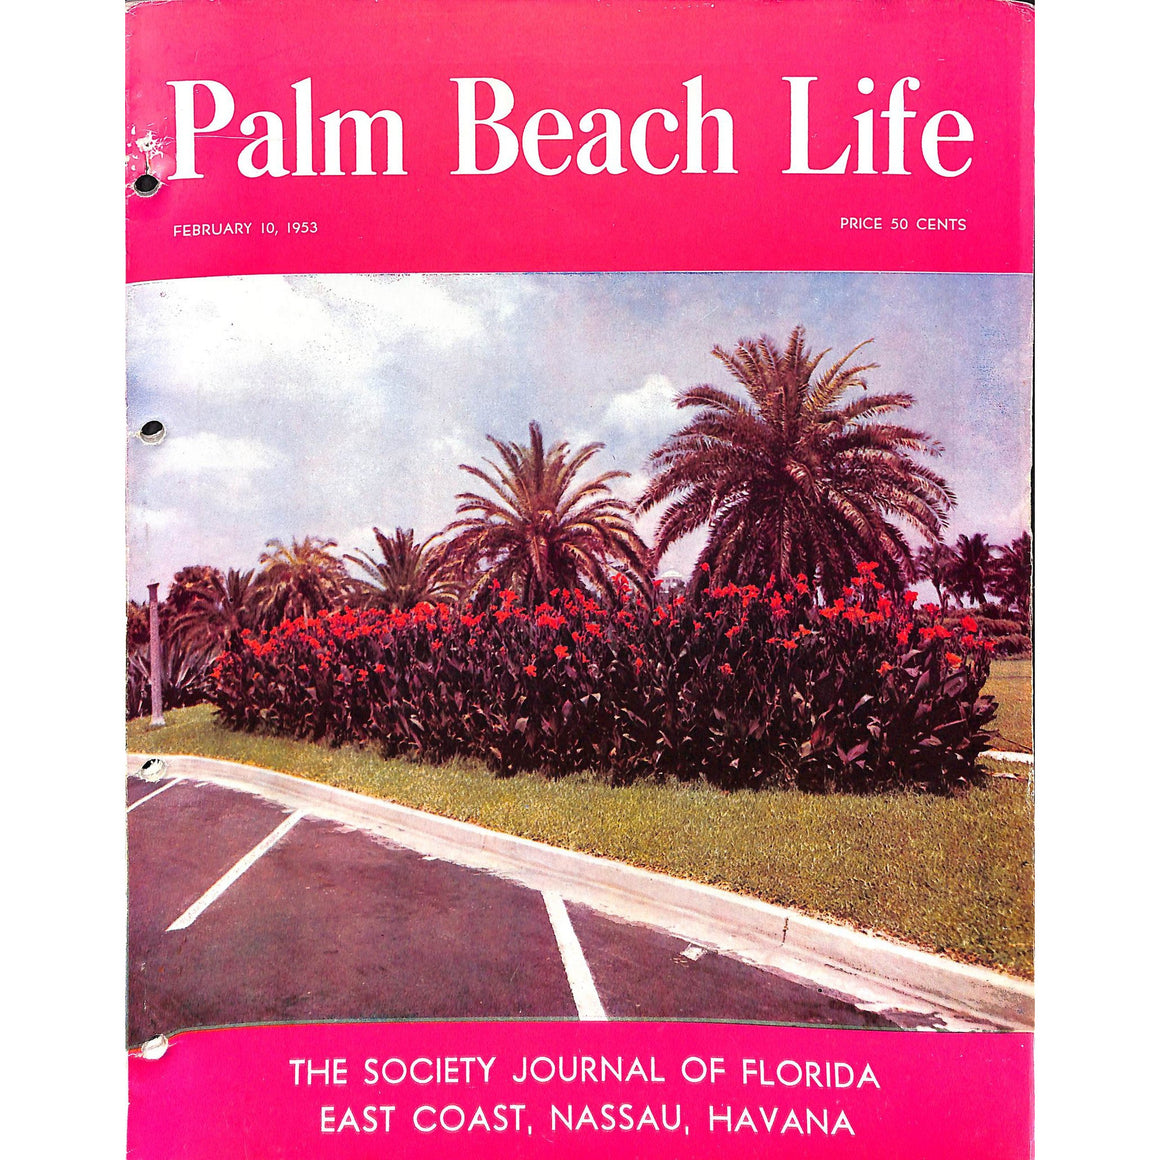 Palm Beach Life Magazine February 10, 1953